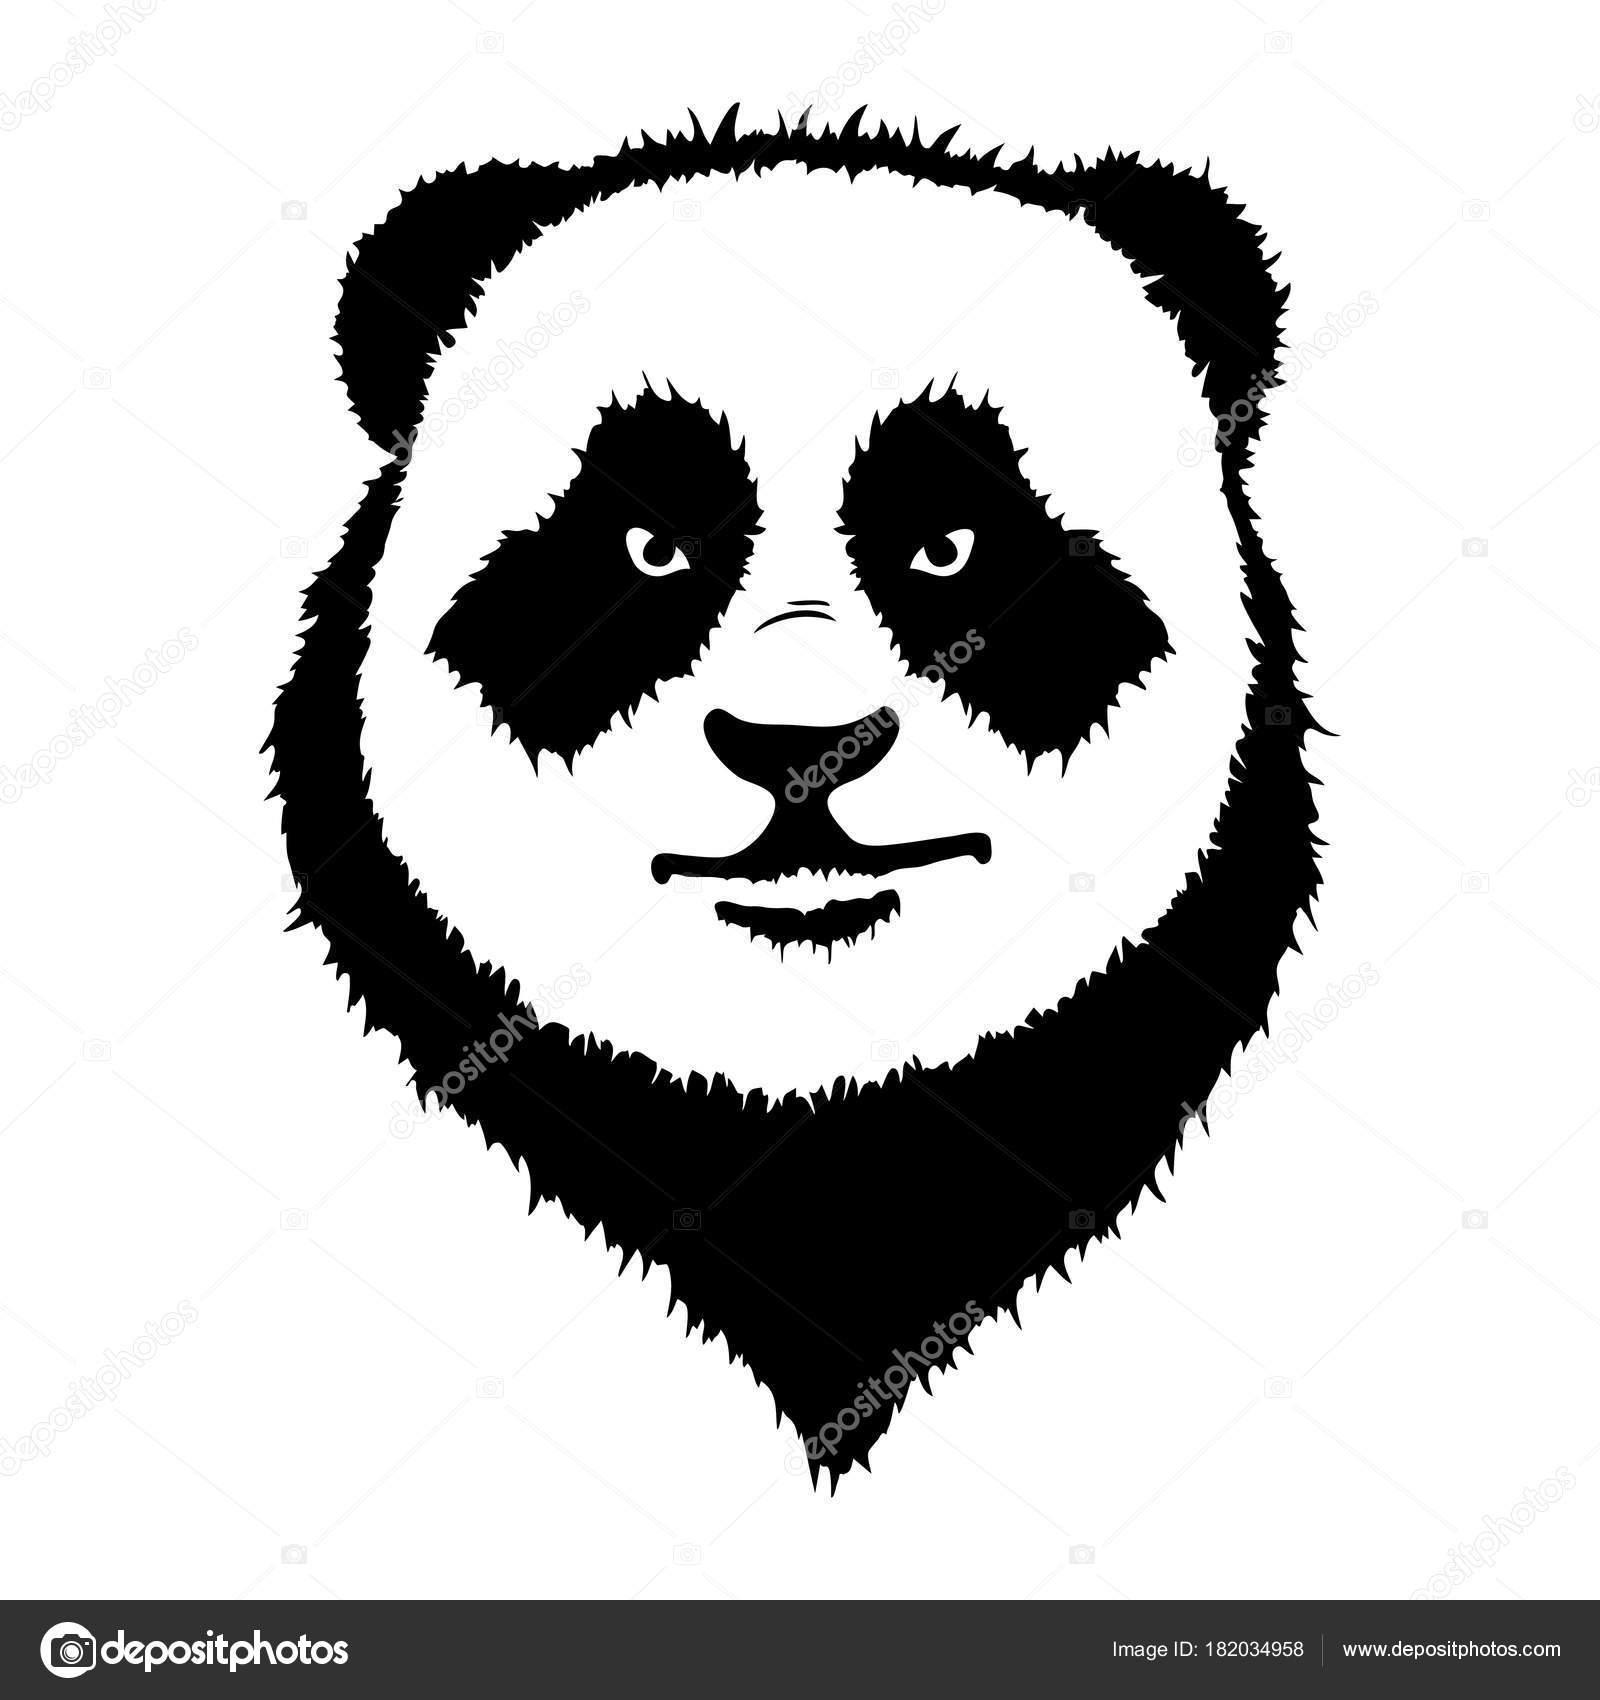 Isolated Illustration Of A Panda Head Stock Vector